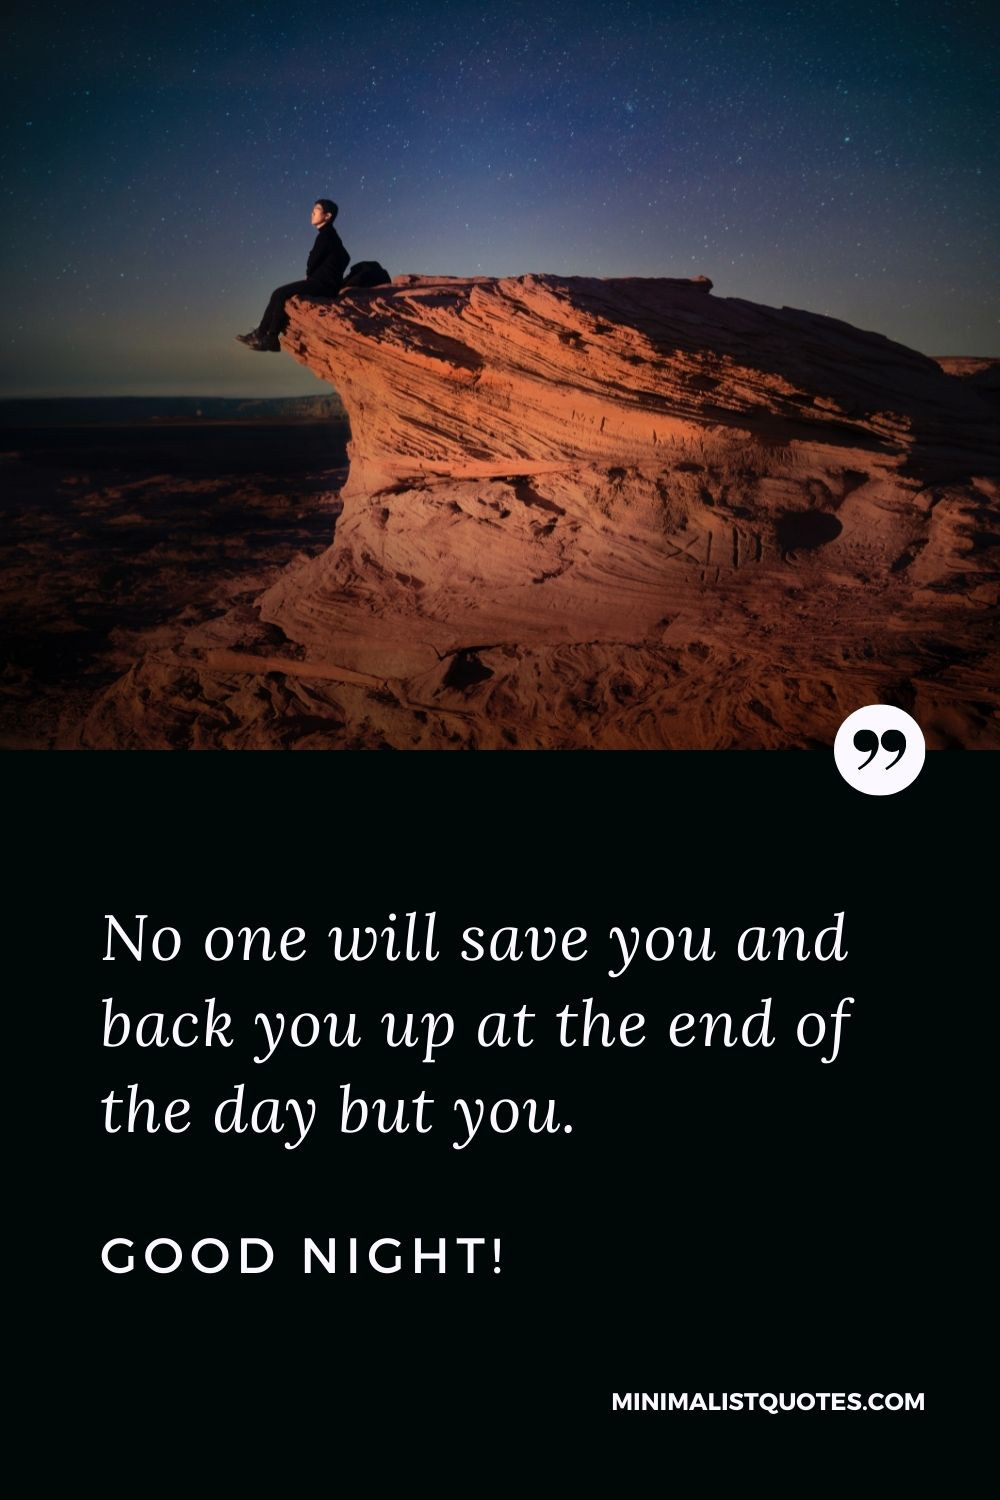 Good Night Quote, Wish & Message With Image: No one will save you and back you up at the end of the day but you. Good Night!